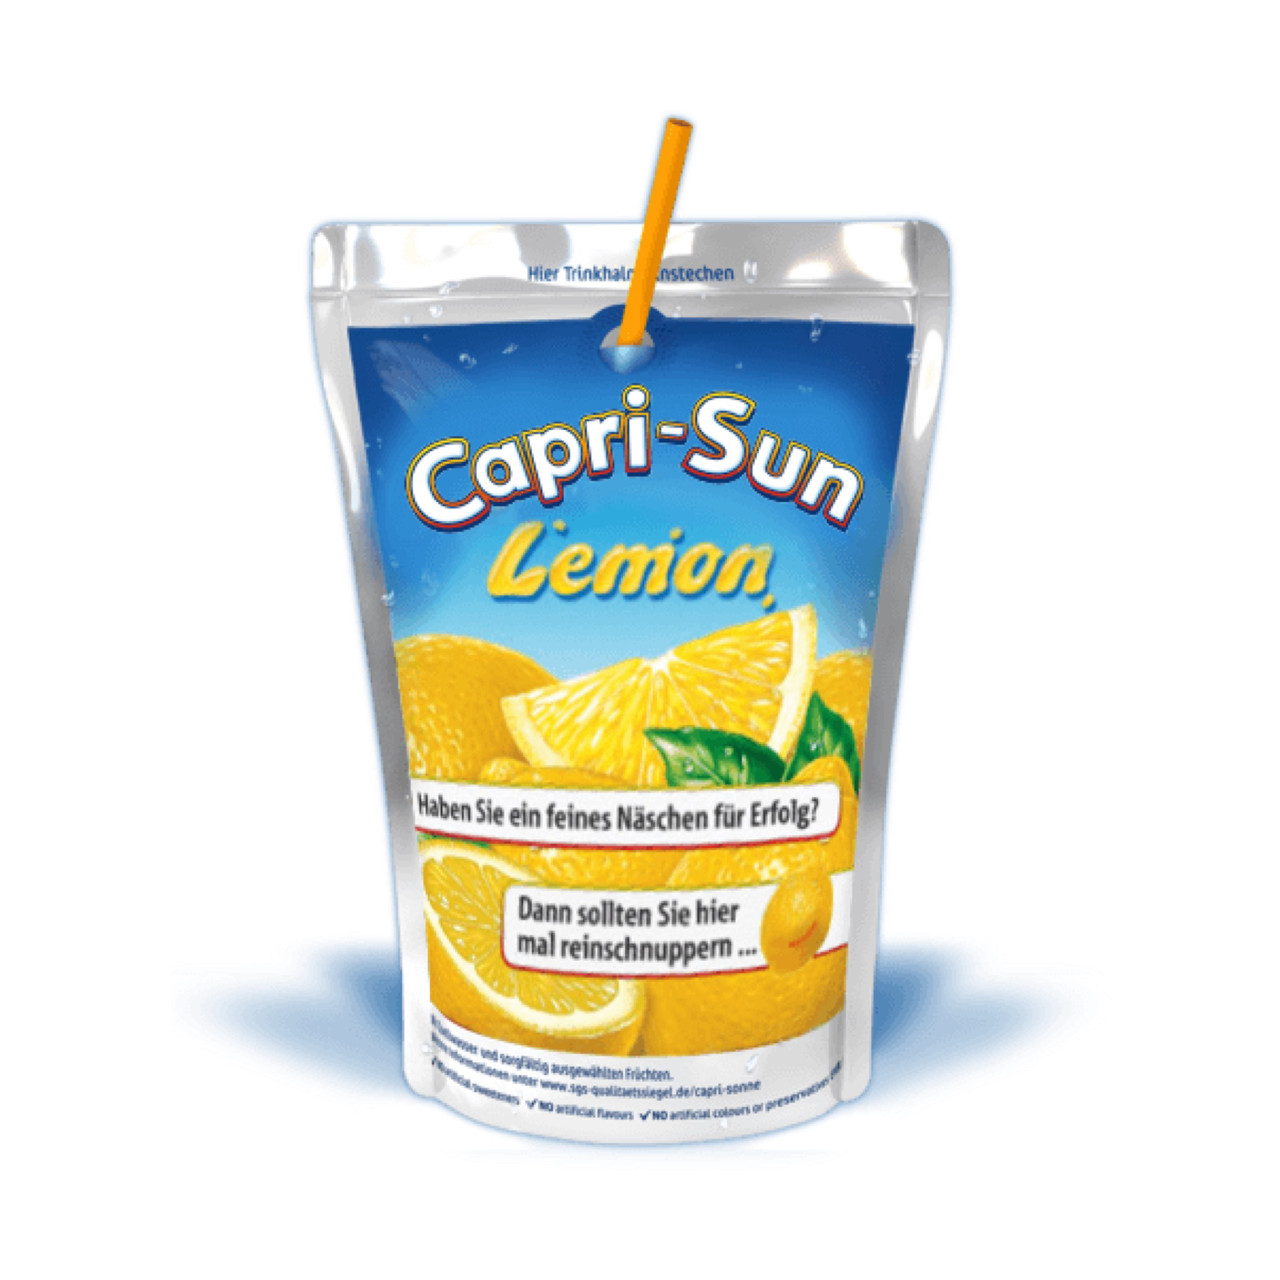 Capri-Sun Lemon Сок со вкусом лимона